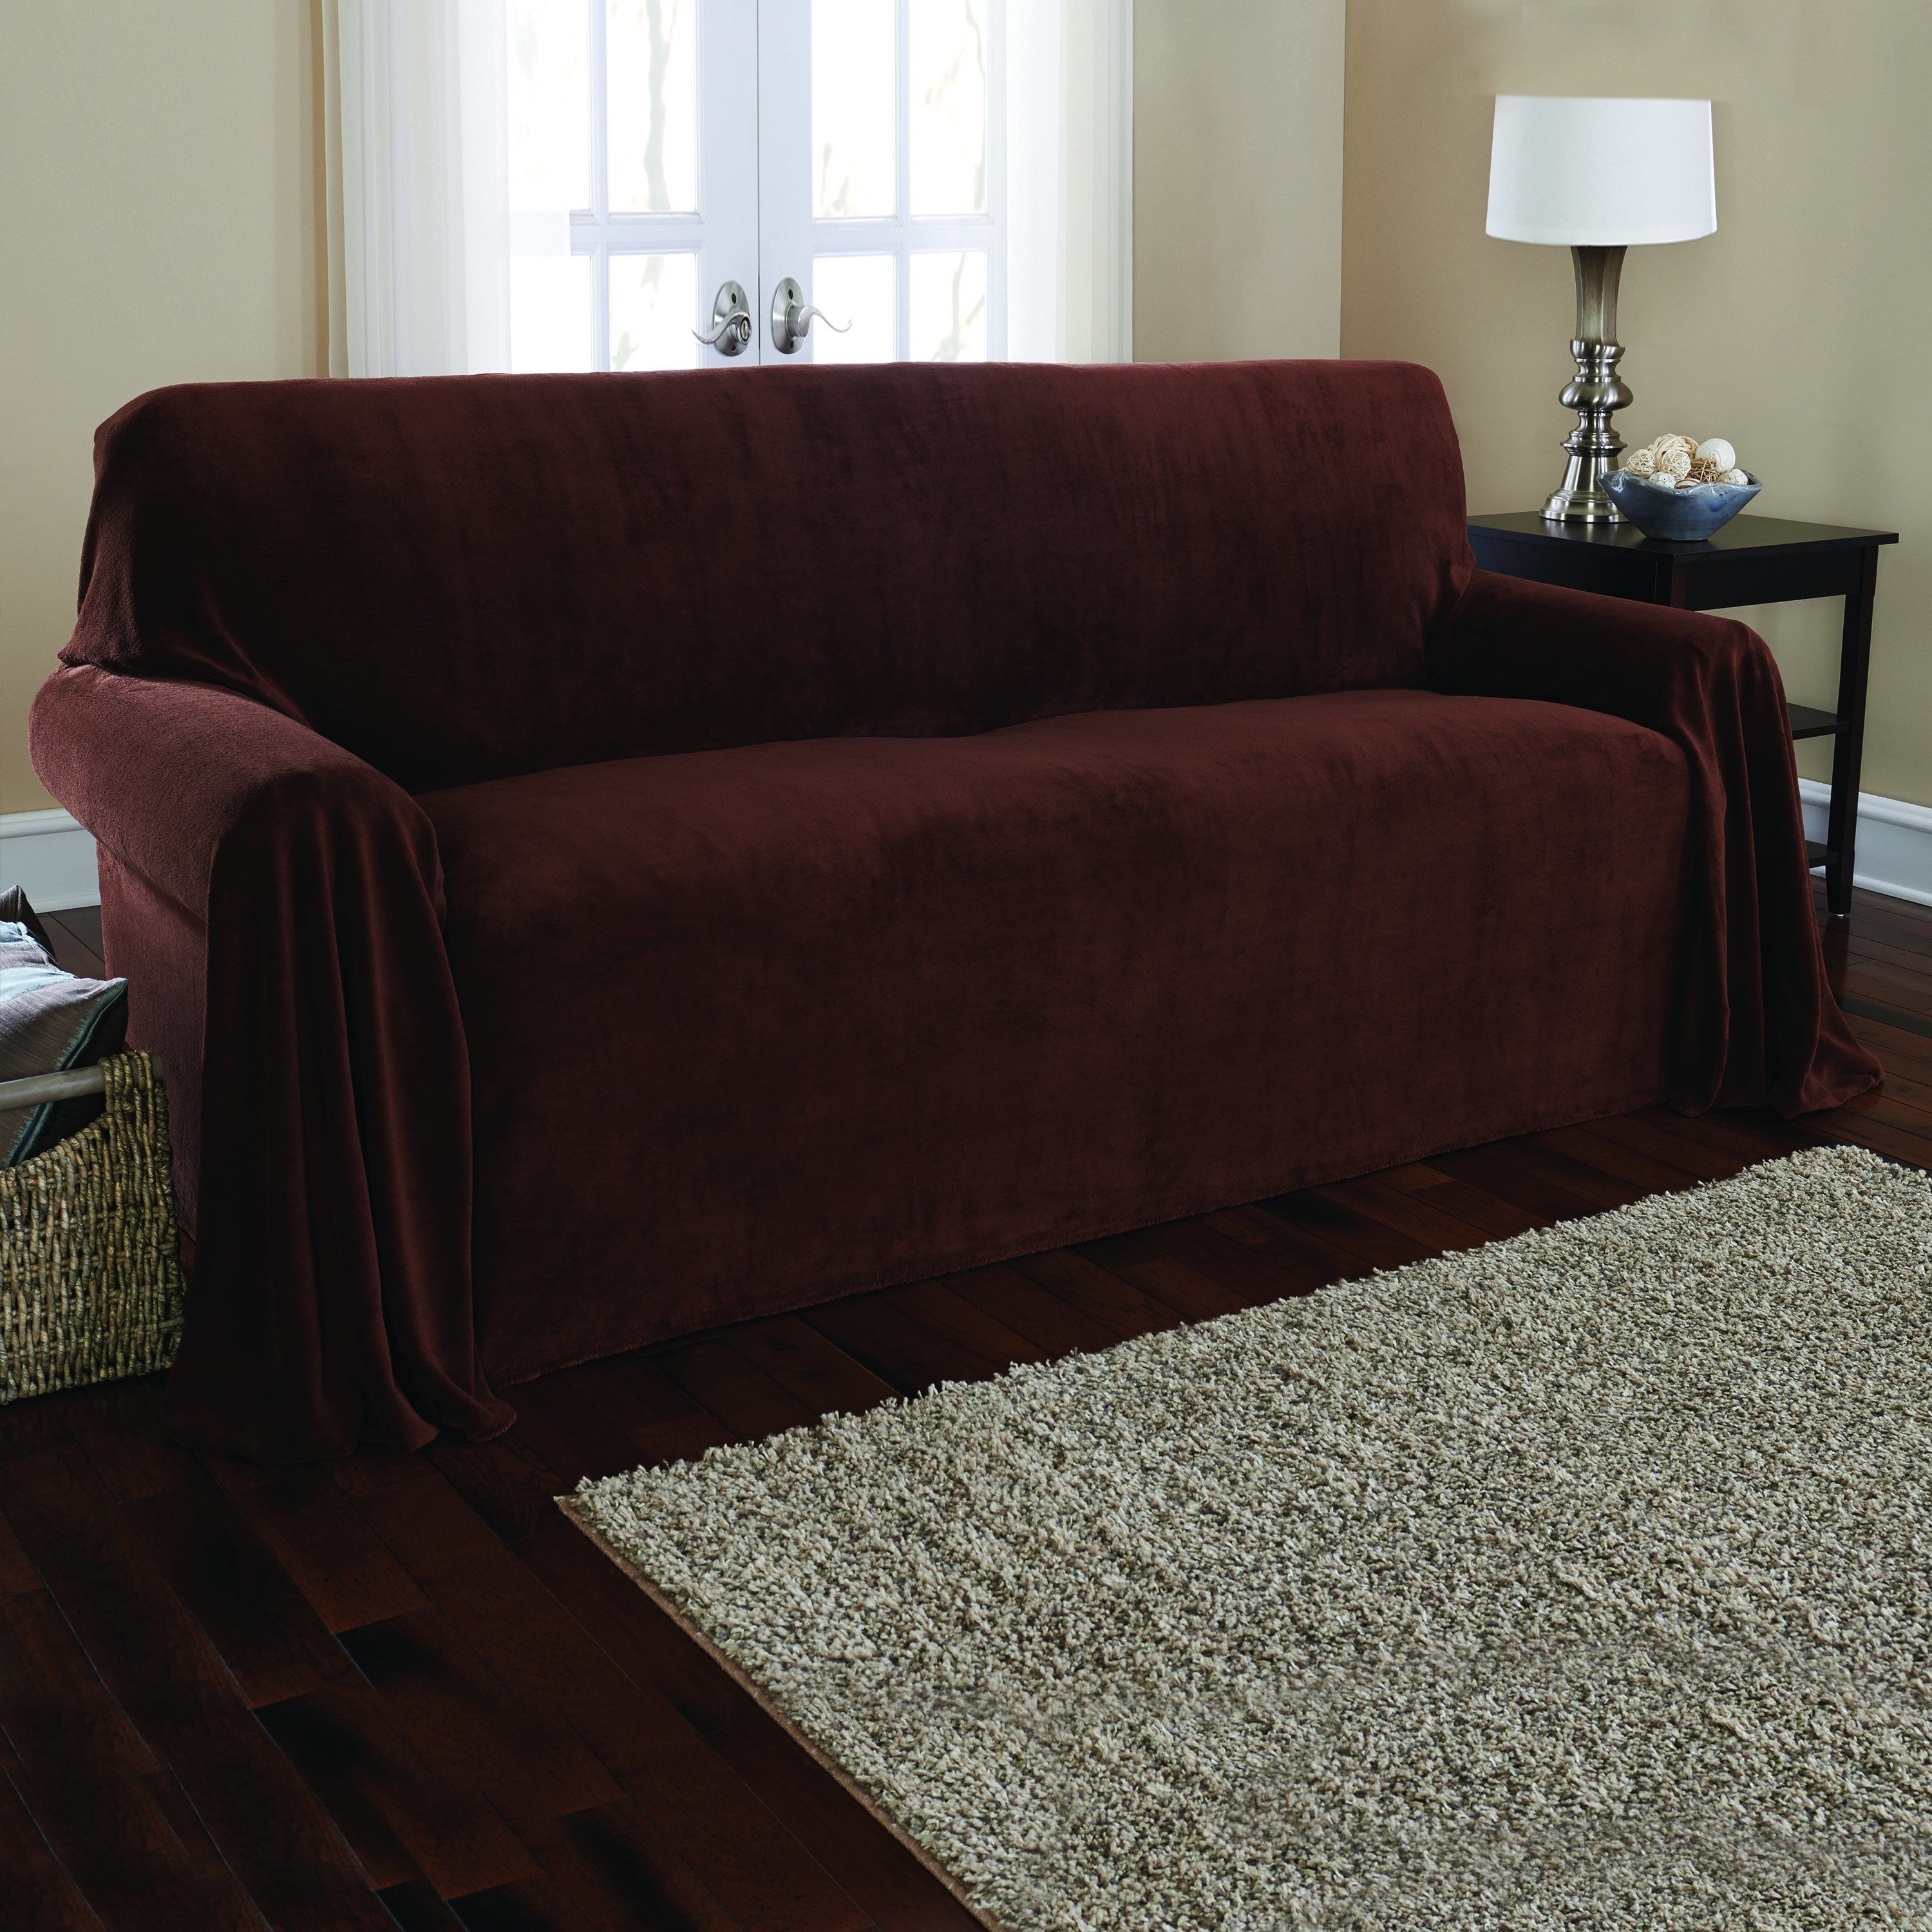 Sure Fit Plush Sofa Throw Warm Chocolate Brown Solid Slipcovers